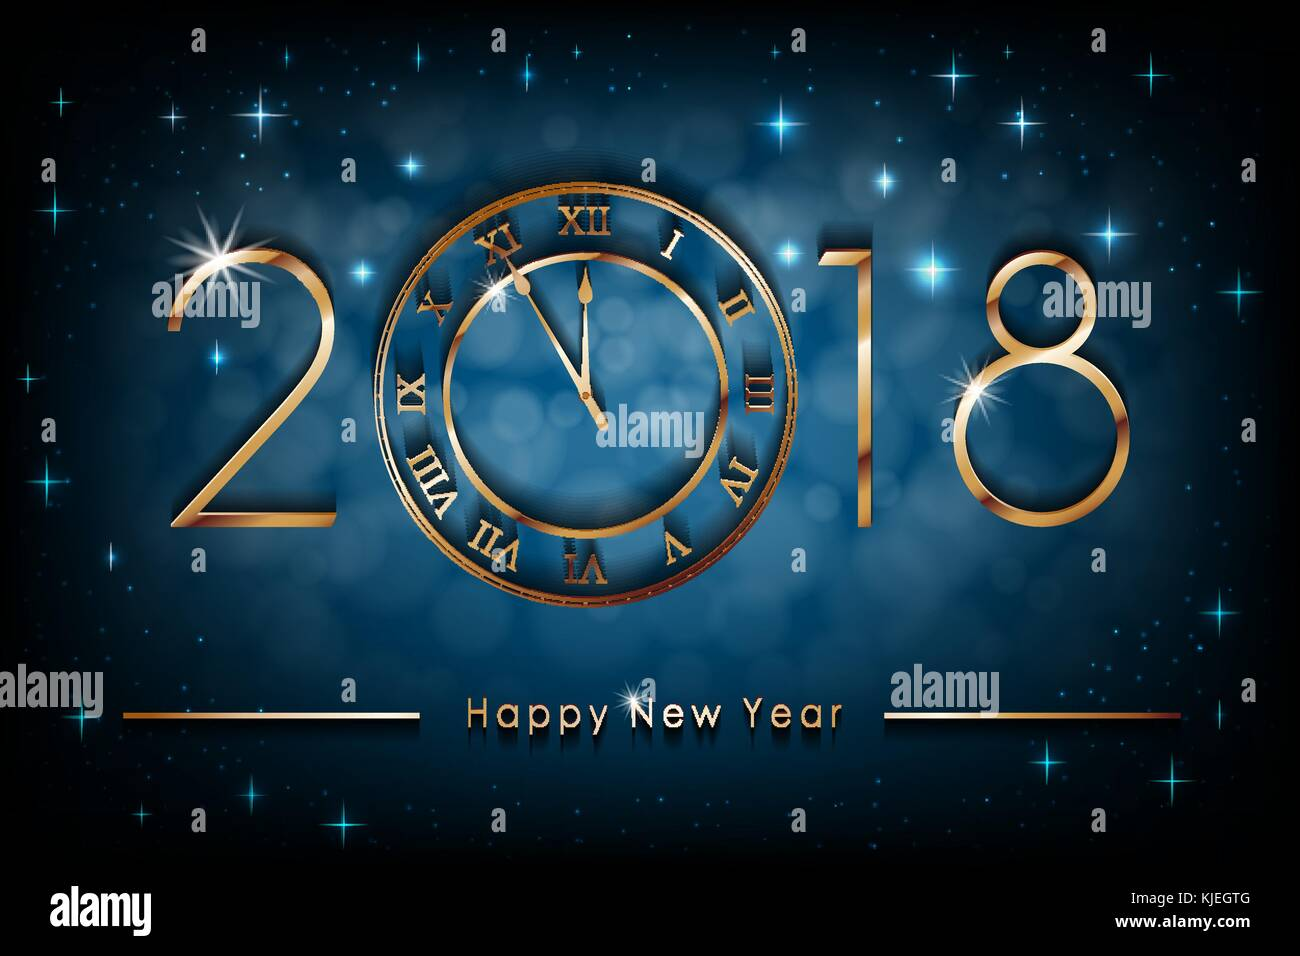 happy new 2018 year illustration on blue shiny background greetings new year banner with gold clock colorful winter background vector